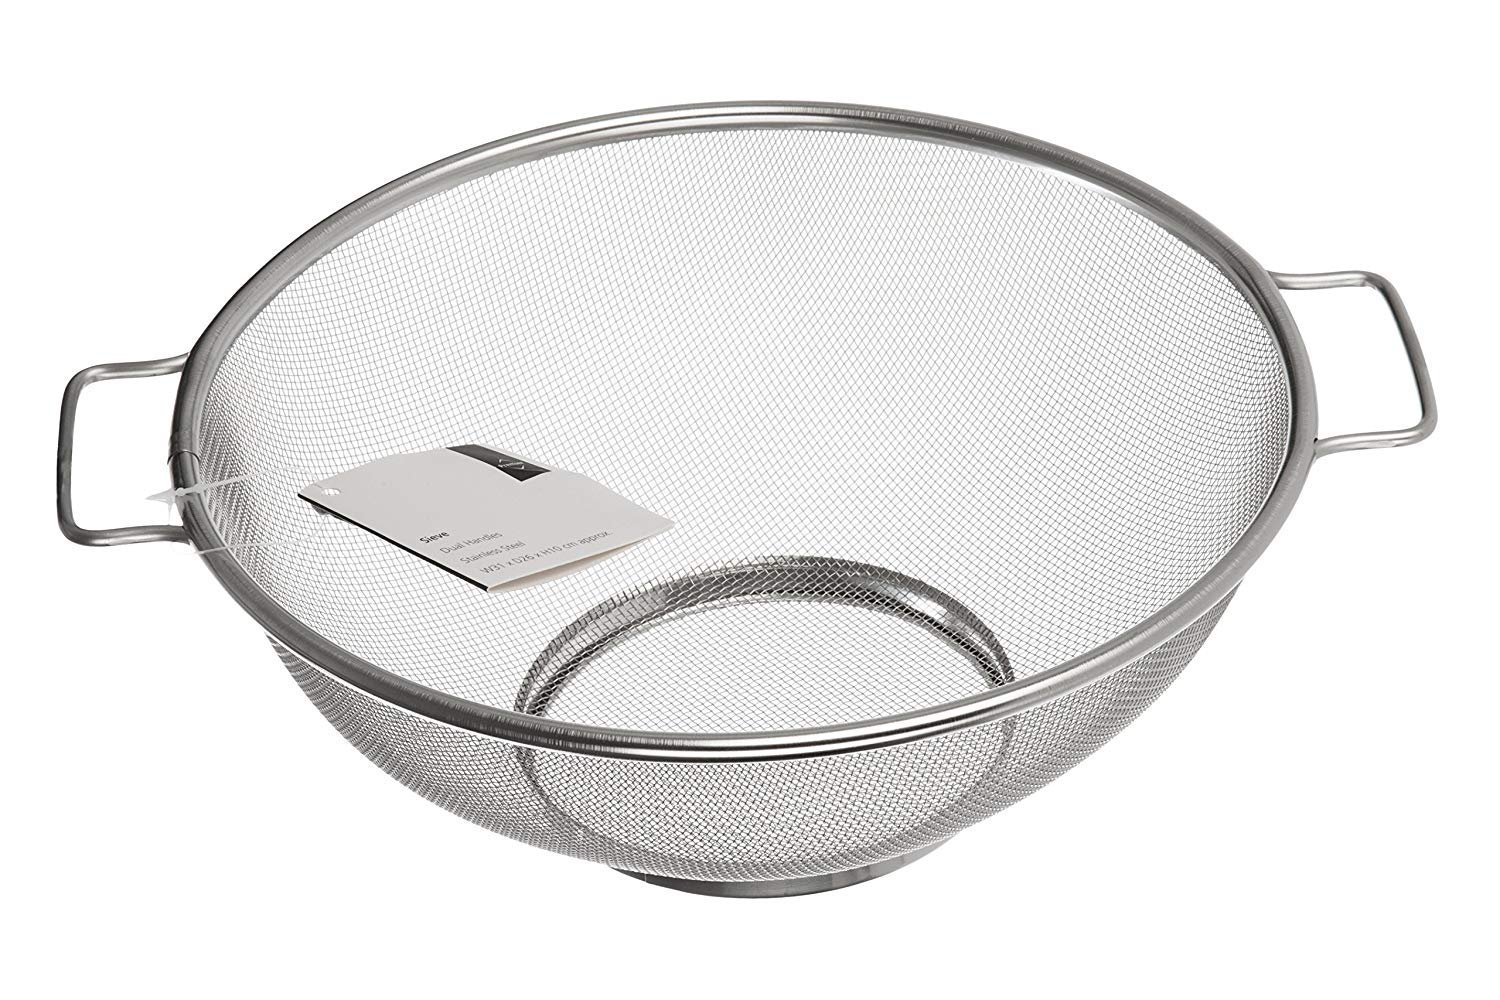 LPWORD Housewares Sieve with Handles, Stainless Steel